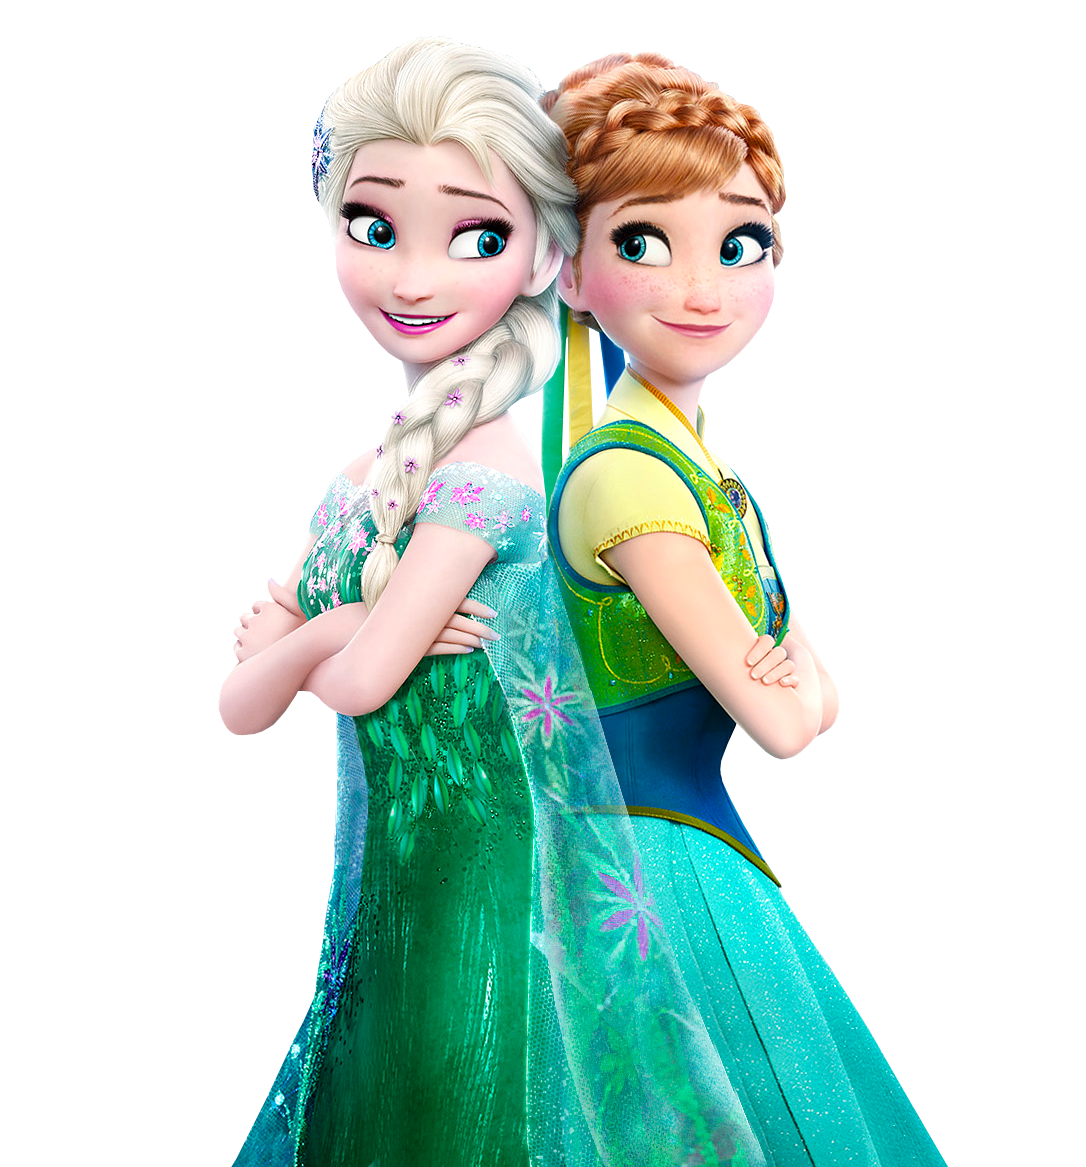 elsa and anna frozen fever transparent background by on deviantart. Black Bedroom Furniture Sets. Home Design Ideas